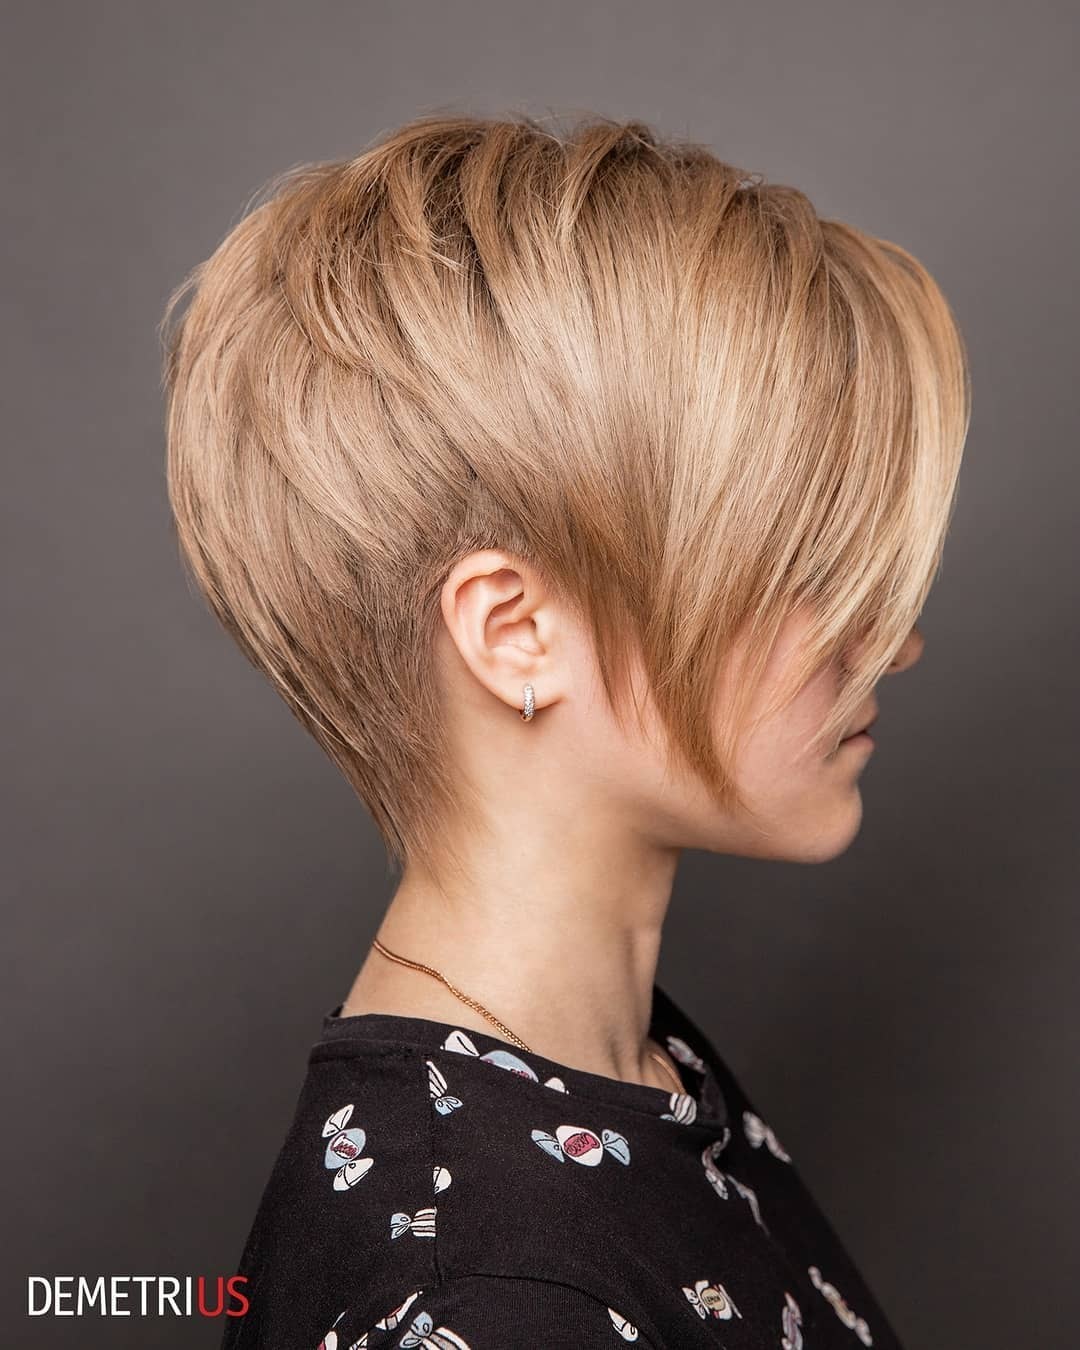 Best Pixie Haircuts, and Short Hair Idea for Female - Short Pixie Hairstyles